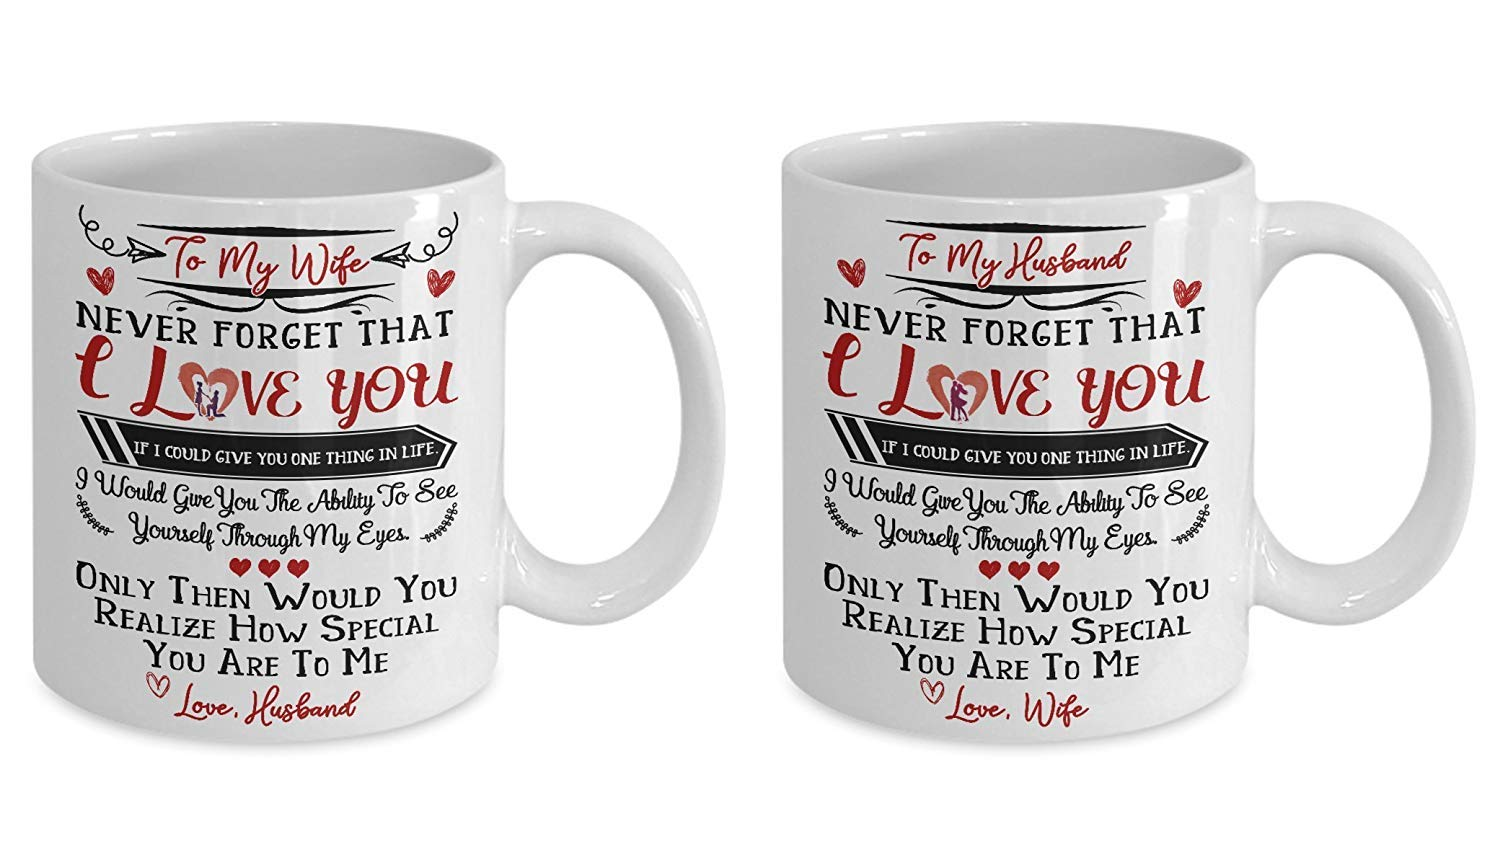 Gift For Wife Husband Best Wedding Anniversary Great Birthday Idea Her Him